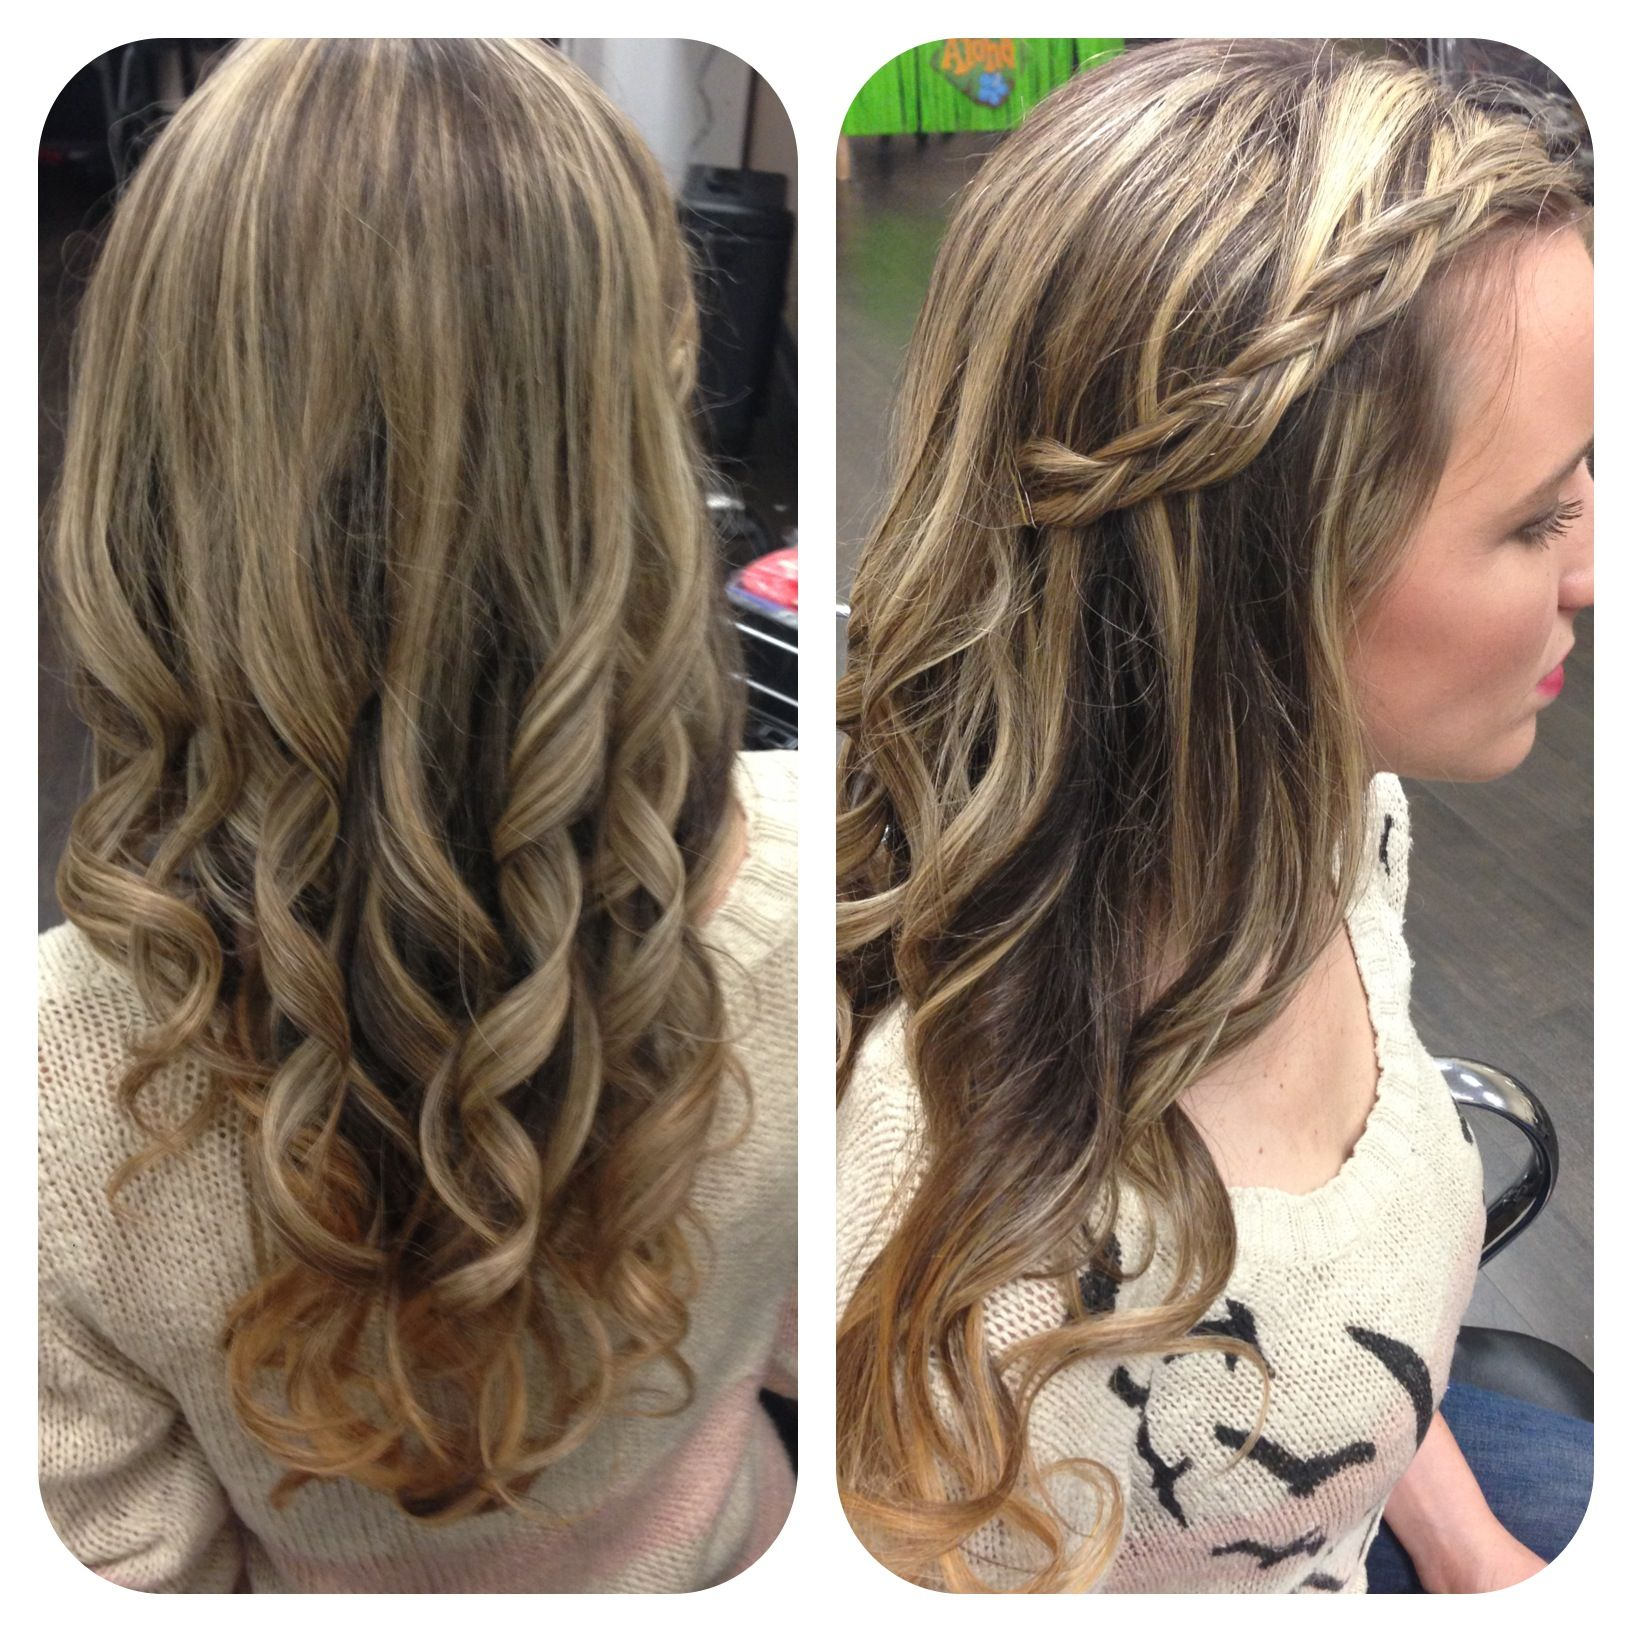 Pin By Teresa Garcia On Hair By Shanae Curled Hairstyles Picture Day Hair Graduation Hairstyles